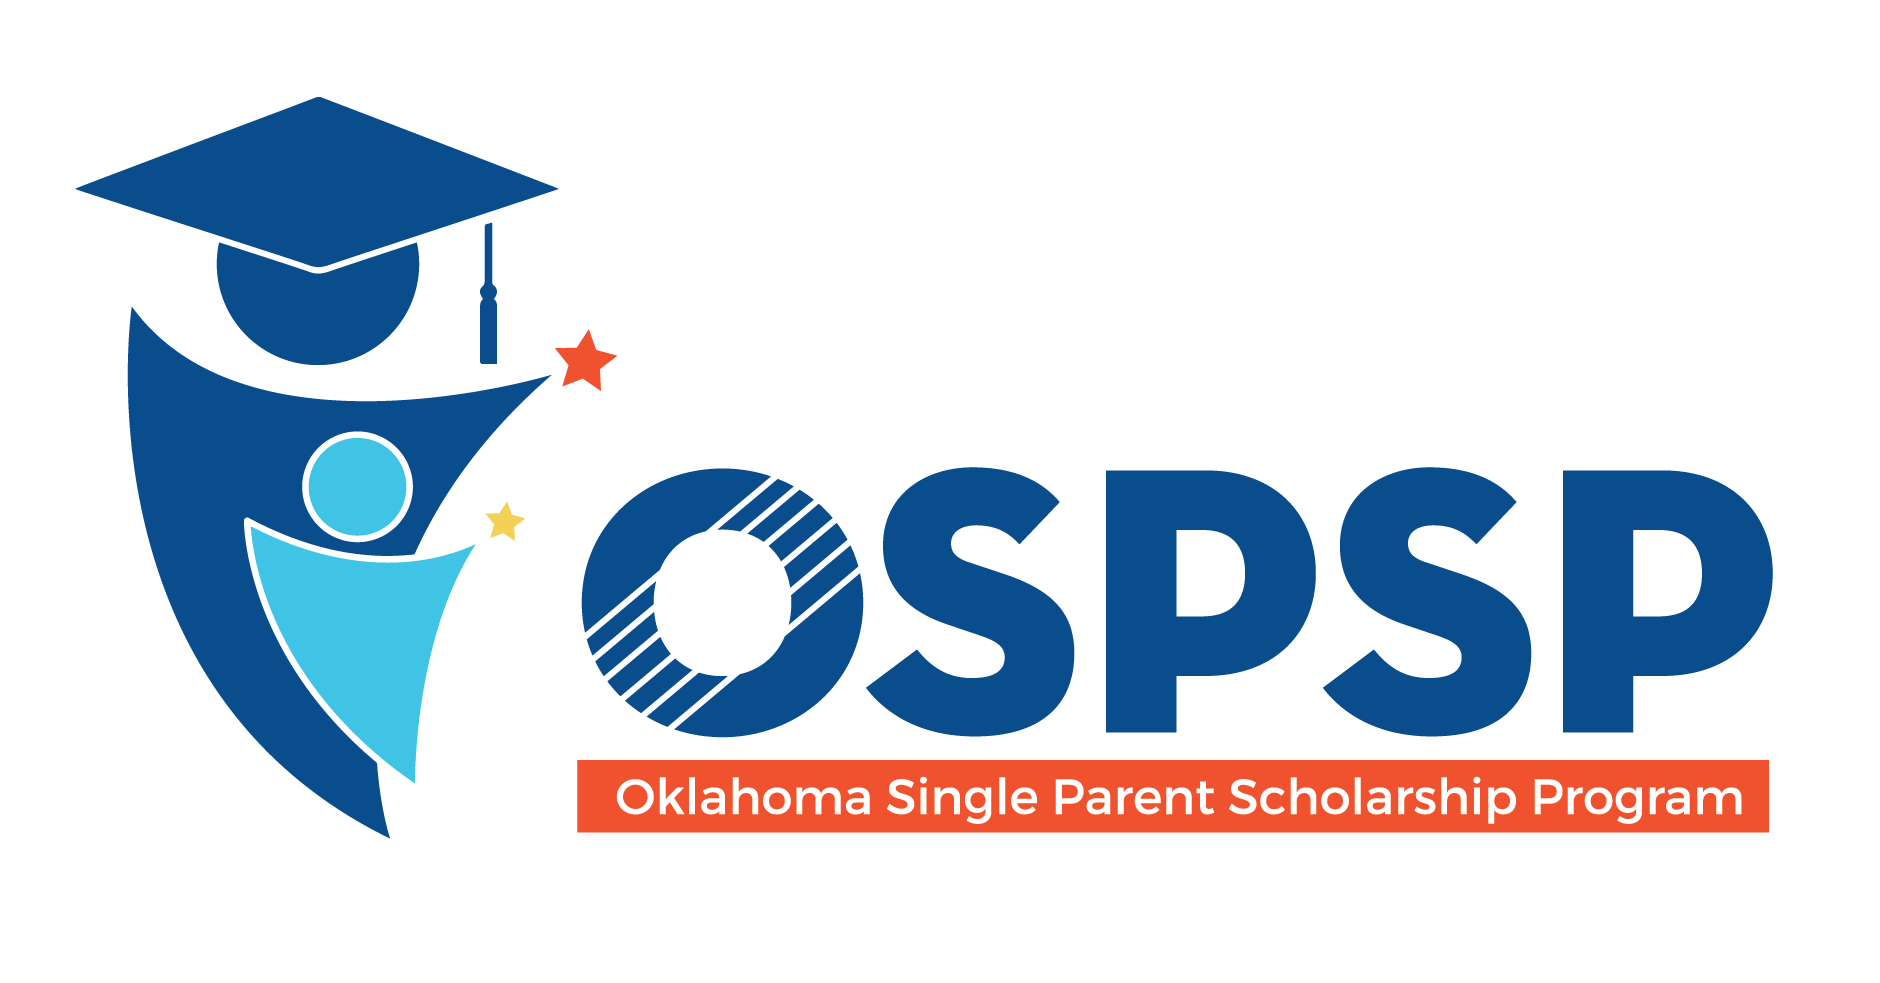 Oklahoma Single Parent Scholarship Program